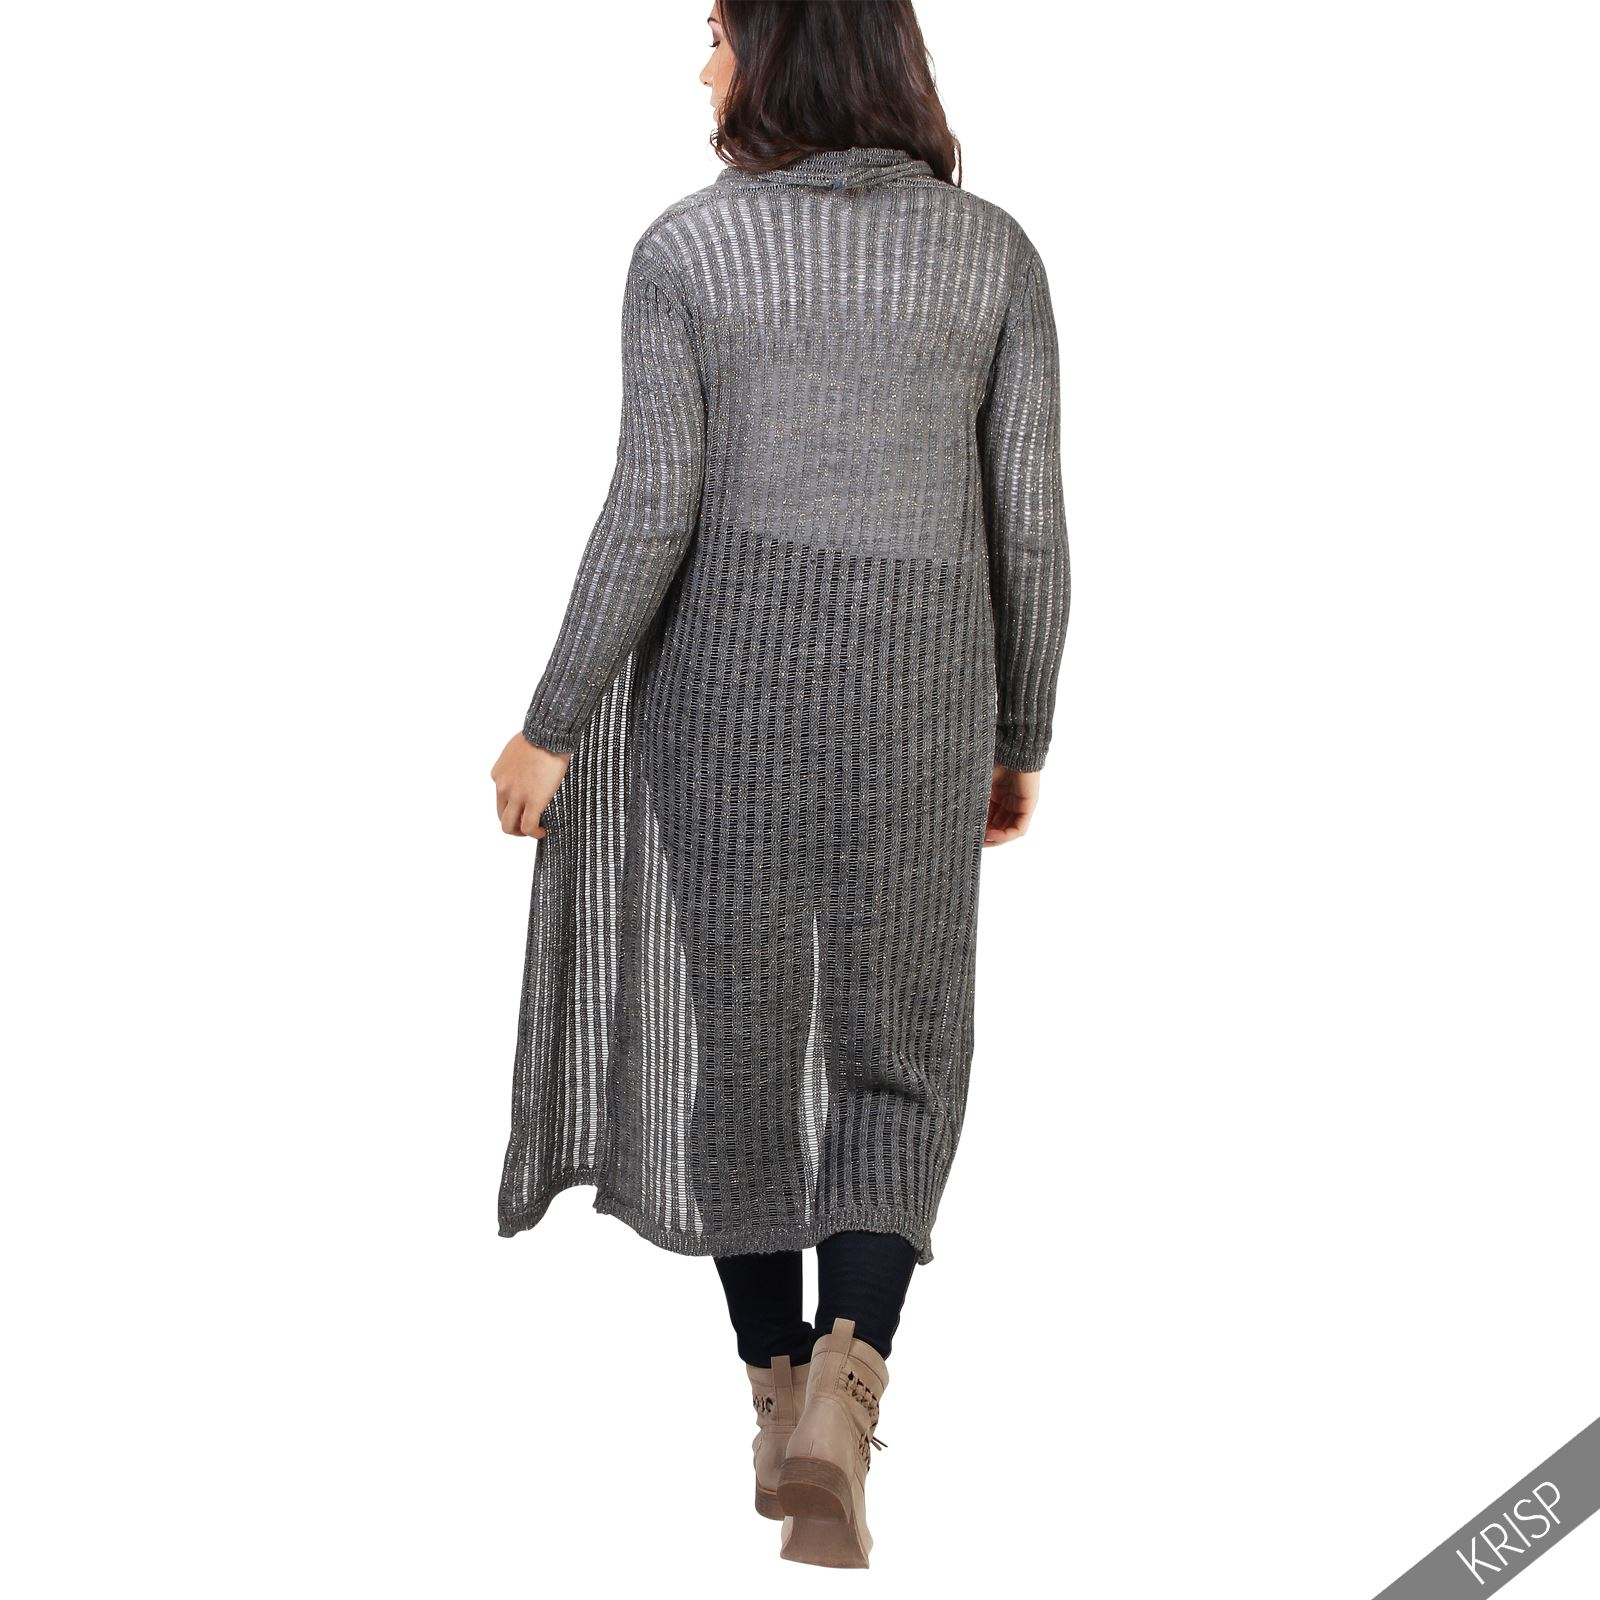 Long Chunky Cardigan Uk - English Sweater Vest